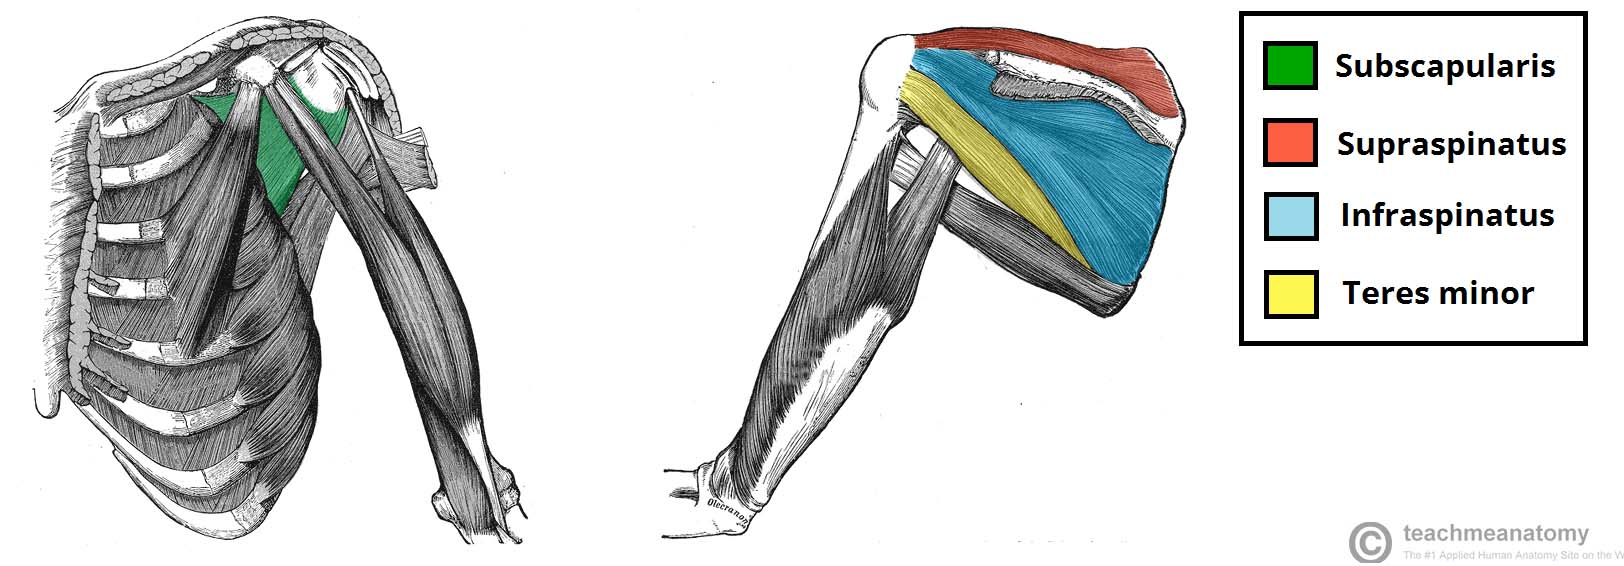 Fig 1.2 - The rotator cuff muscles, which act to stabilise the shoulder joint.